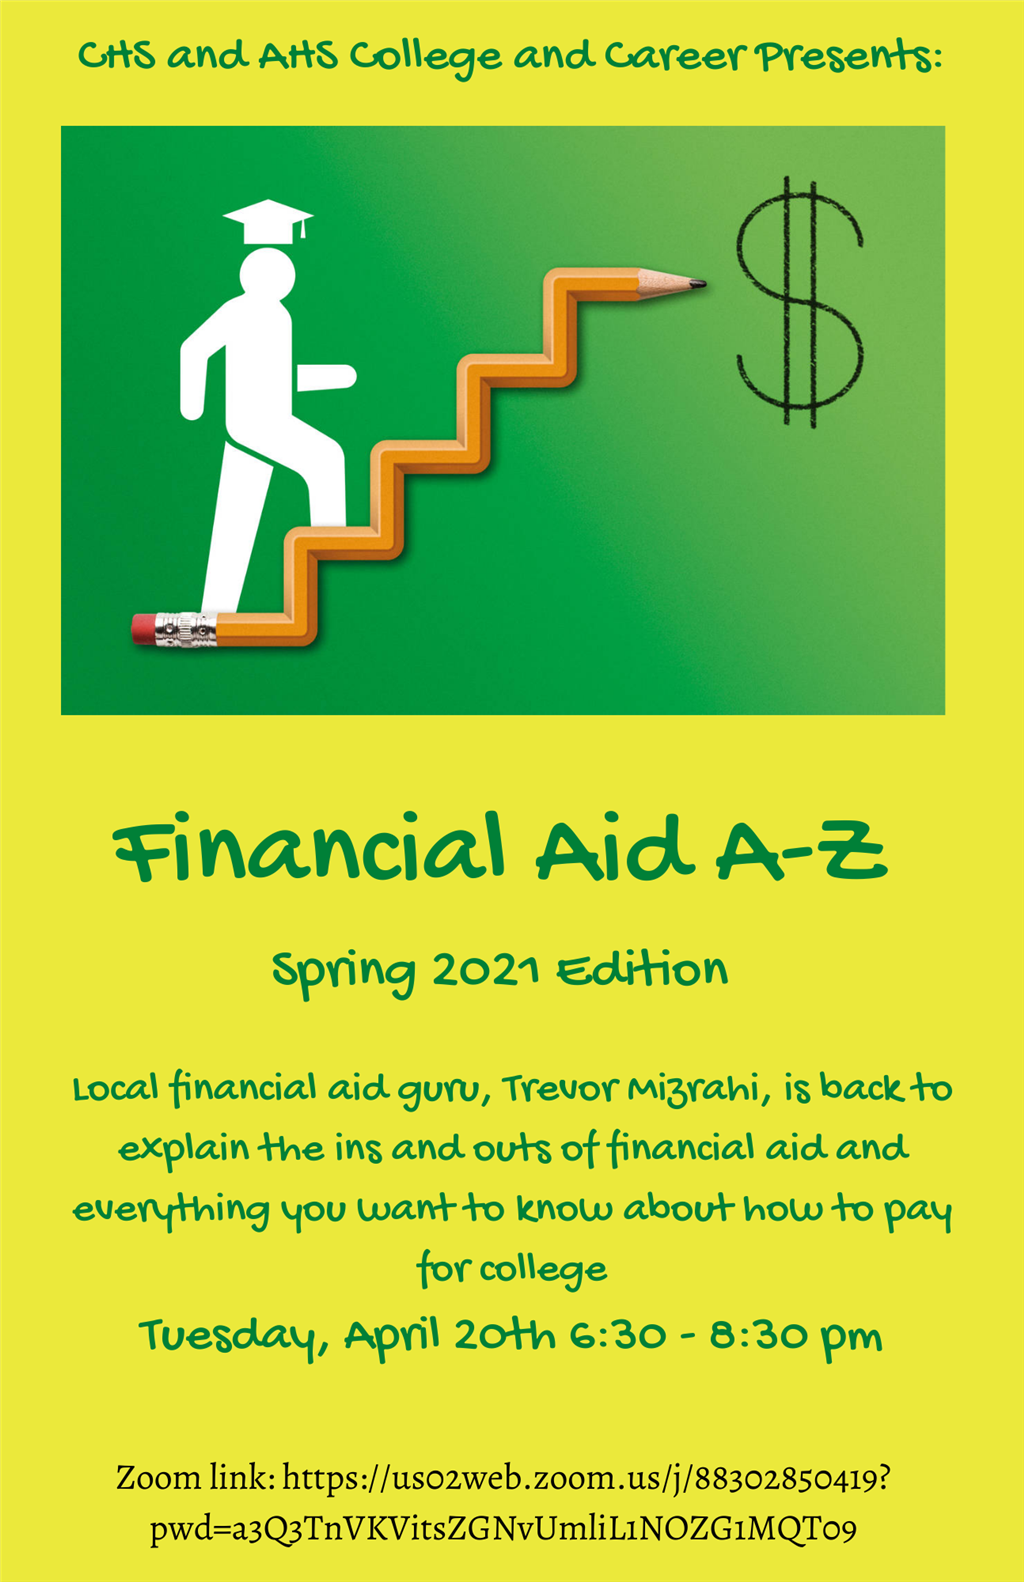 Financial Aid A-Z - Spring 2021 Edition on Tues., April 20 from 6:30 - 8:30 p.m.